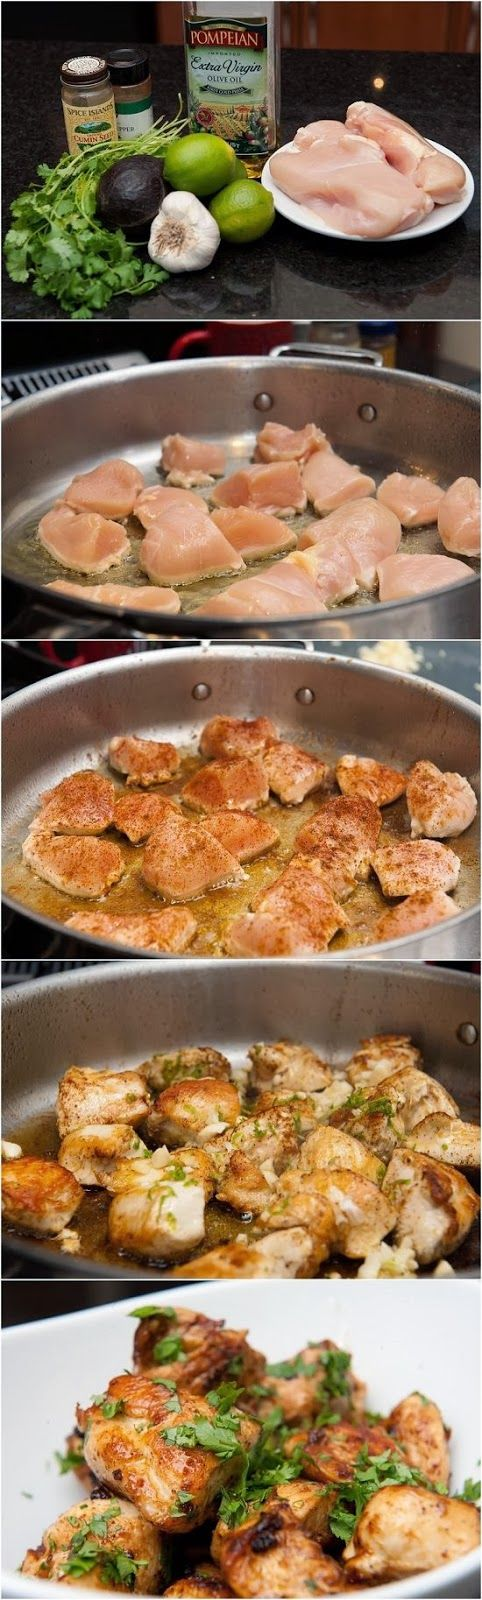 Yummy Recipes: Quick Lime Cilantro Chicken recipe